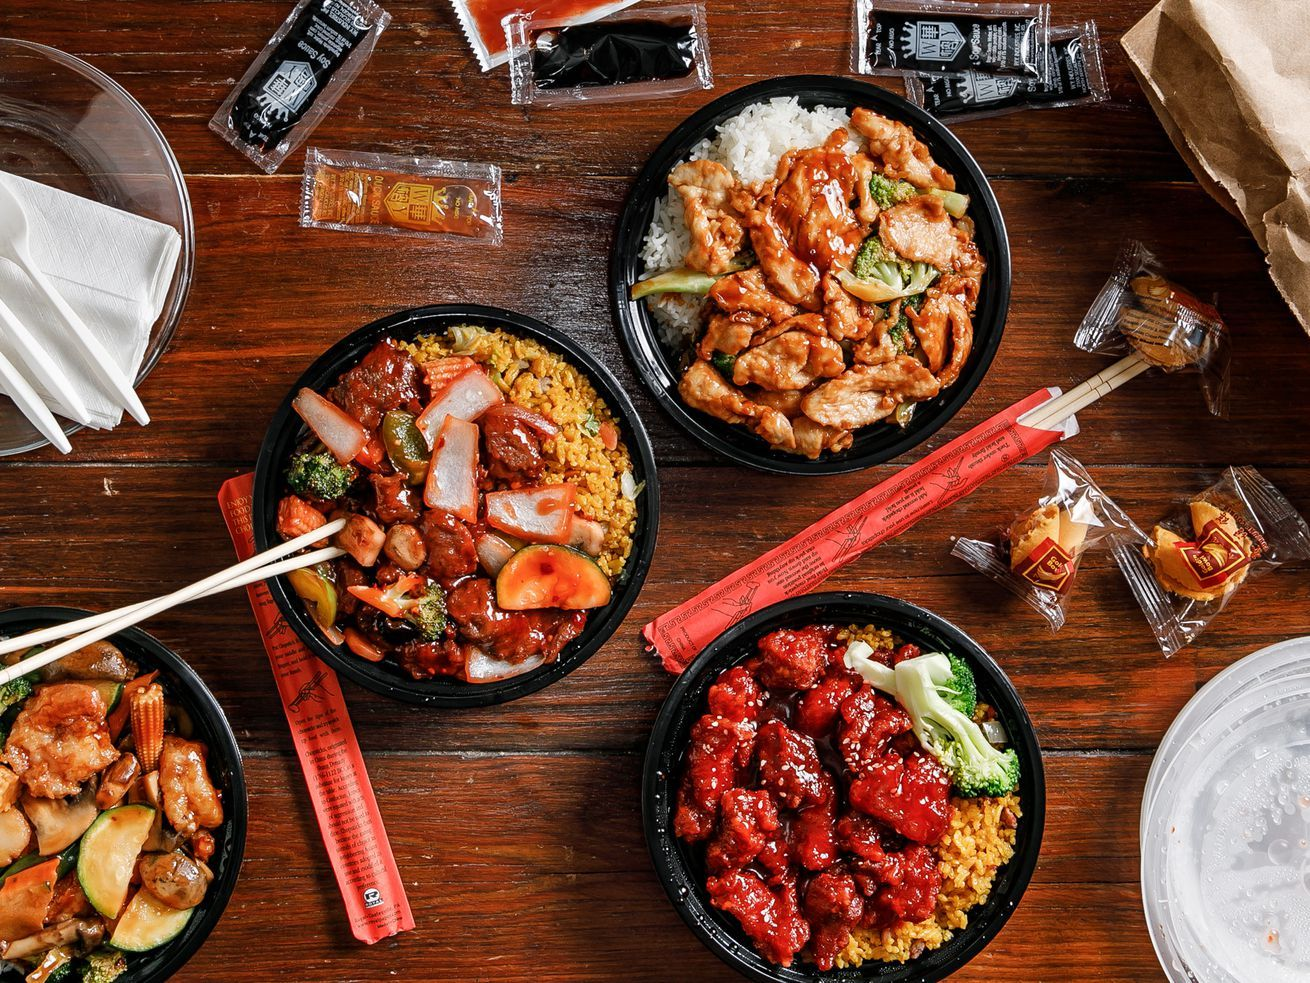 The 4 Top Options For Chinese Takeout In Charleston In 2020 Best Chinese Food American Cuisine Chinese Restaurant